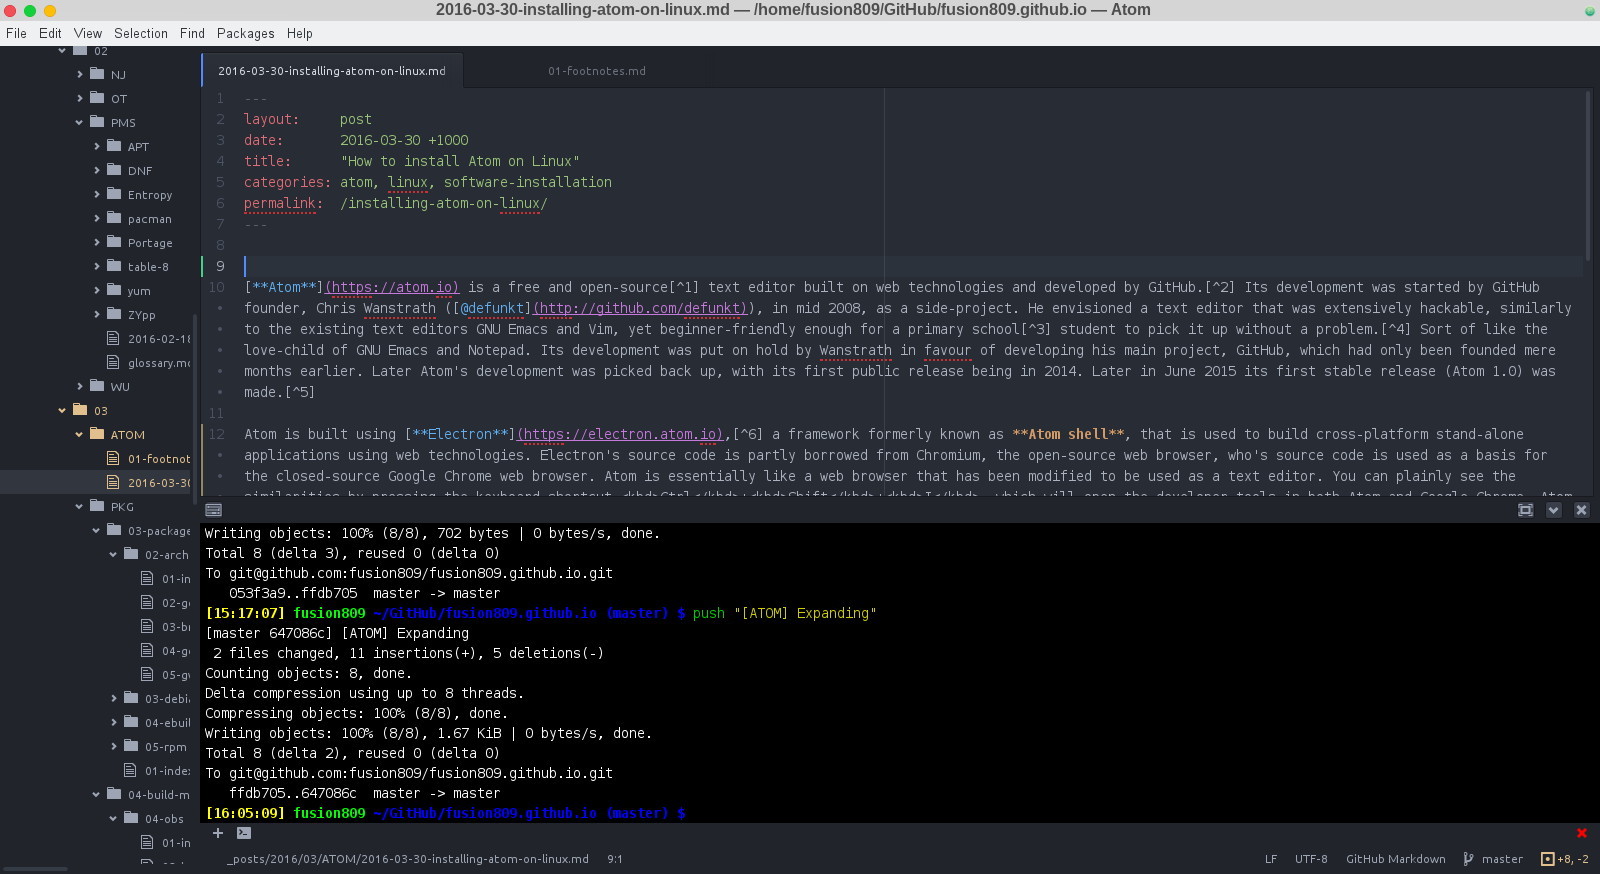 Atom 1.6.0 opened to the source of this very post on *The Hornery*.